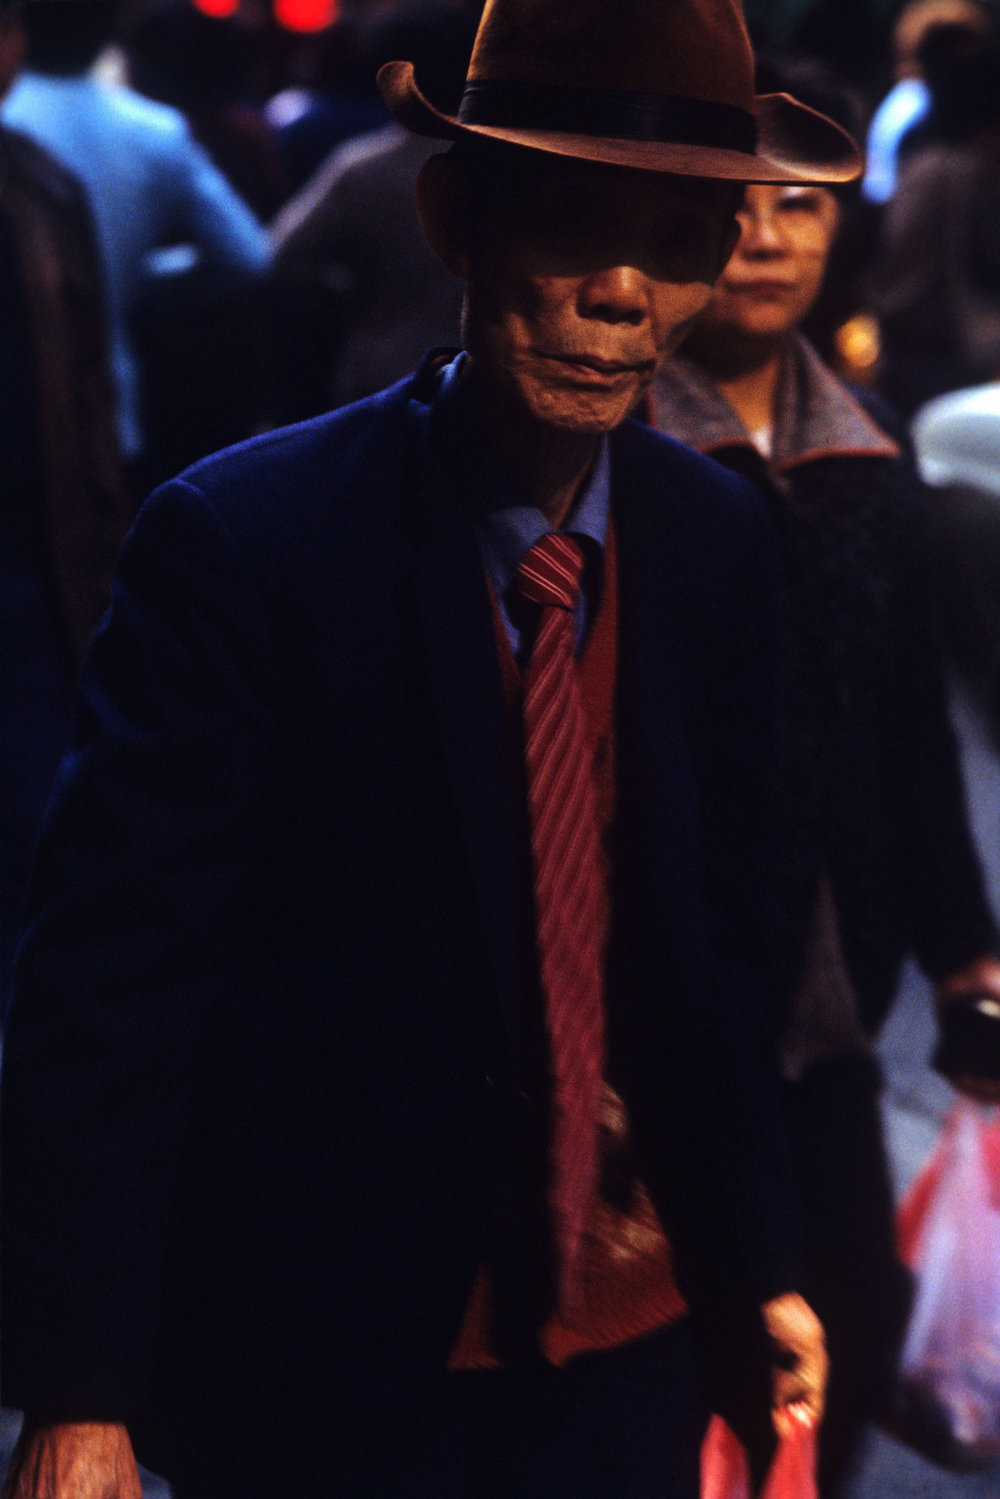 Greg Girard, Man in Hat and Jacket, Wan Chai, 1985.jpg